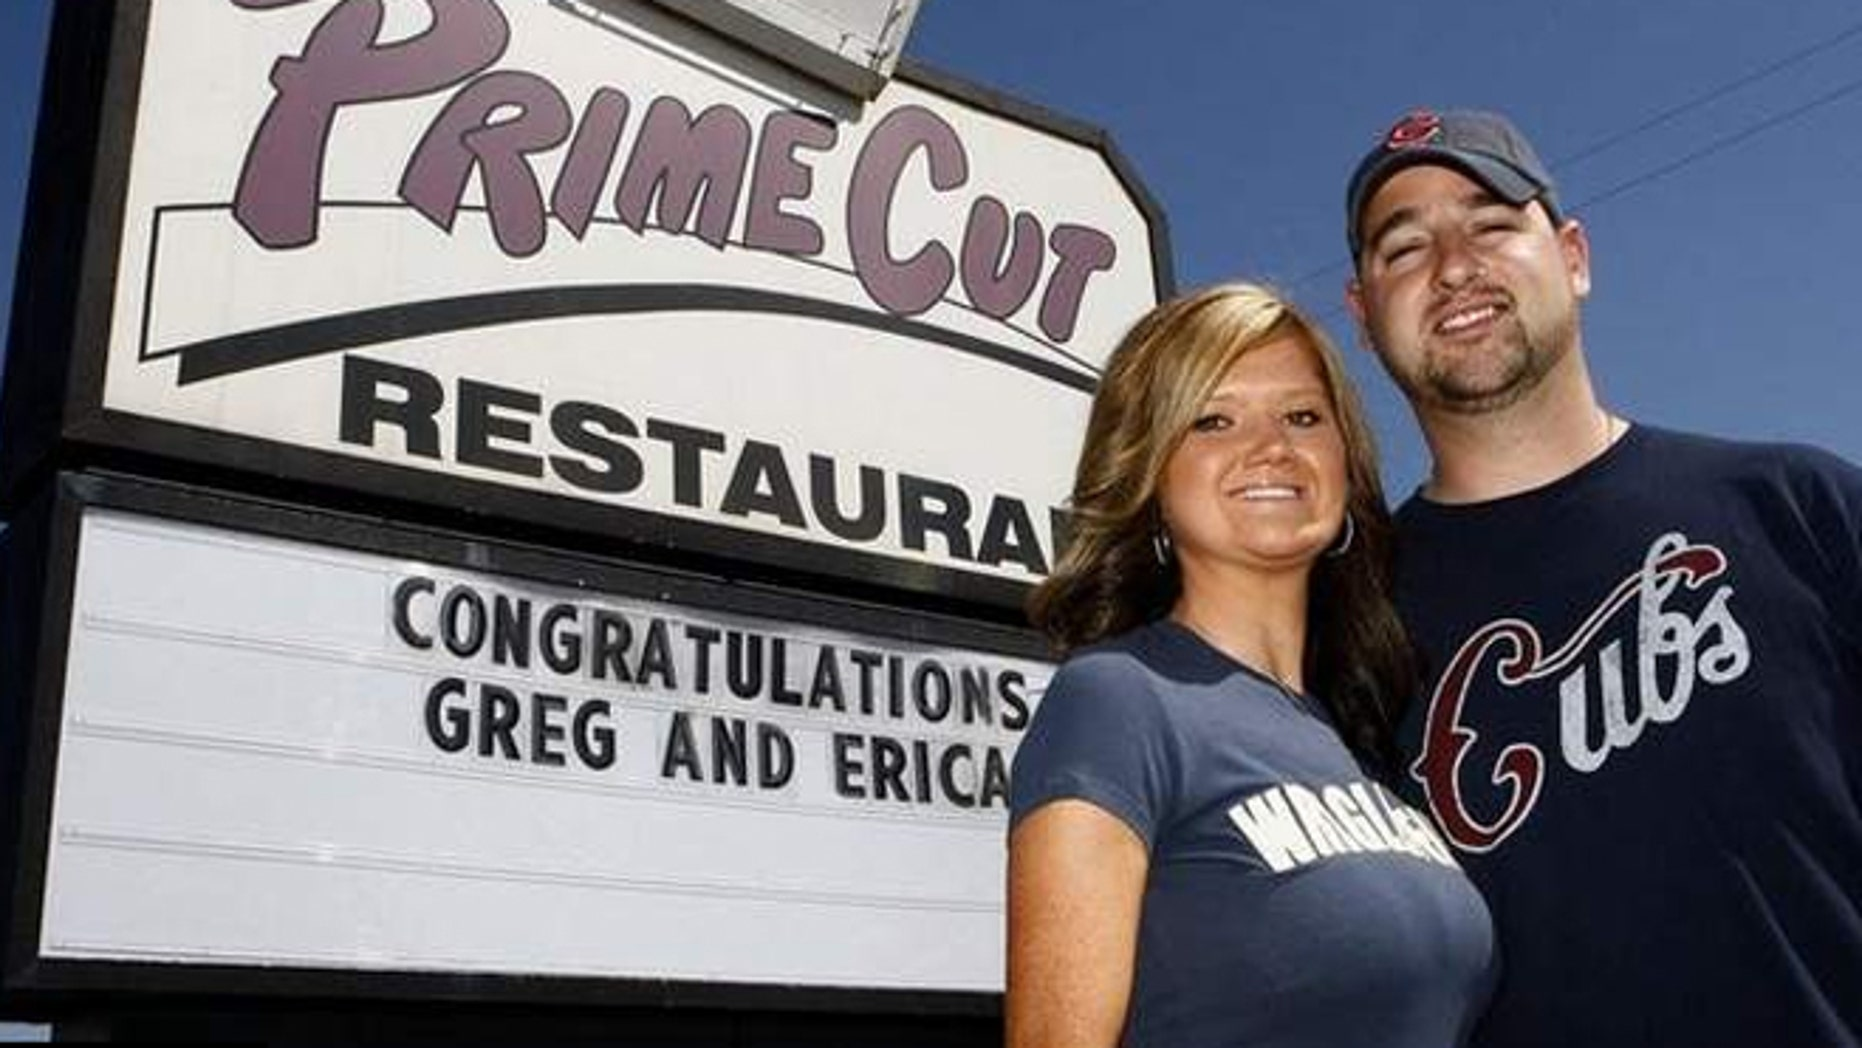 Greg Altringer proposed to his girlfriend Erica Kresge the old-fashioned way after she missed the message on a scoreboard at Wrigley Field.